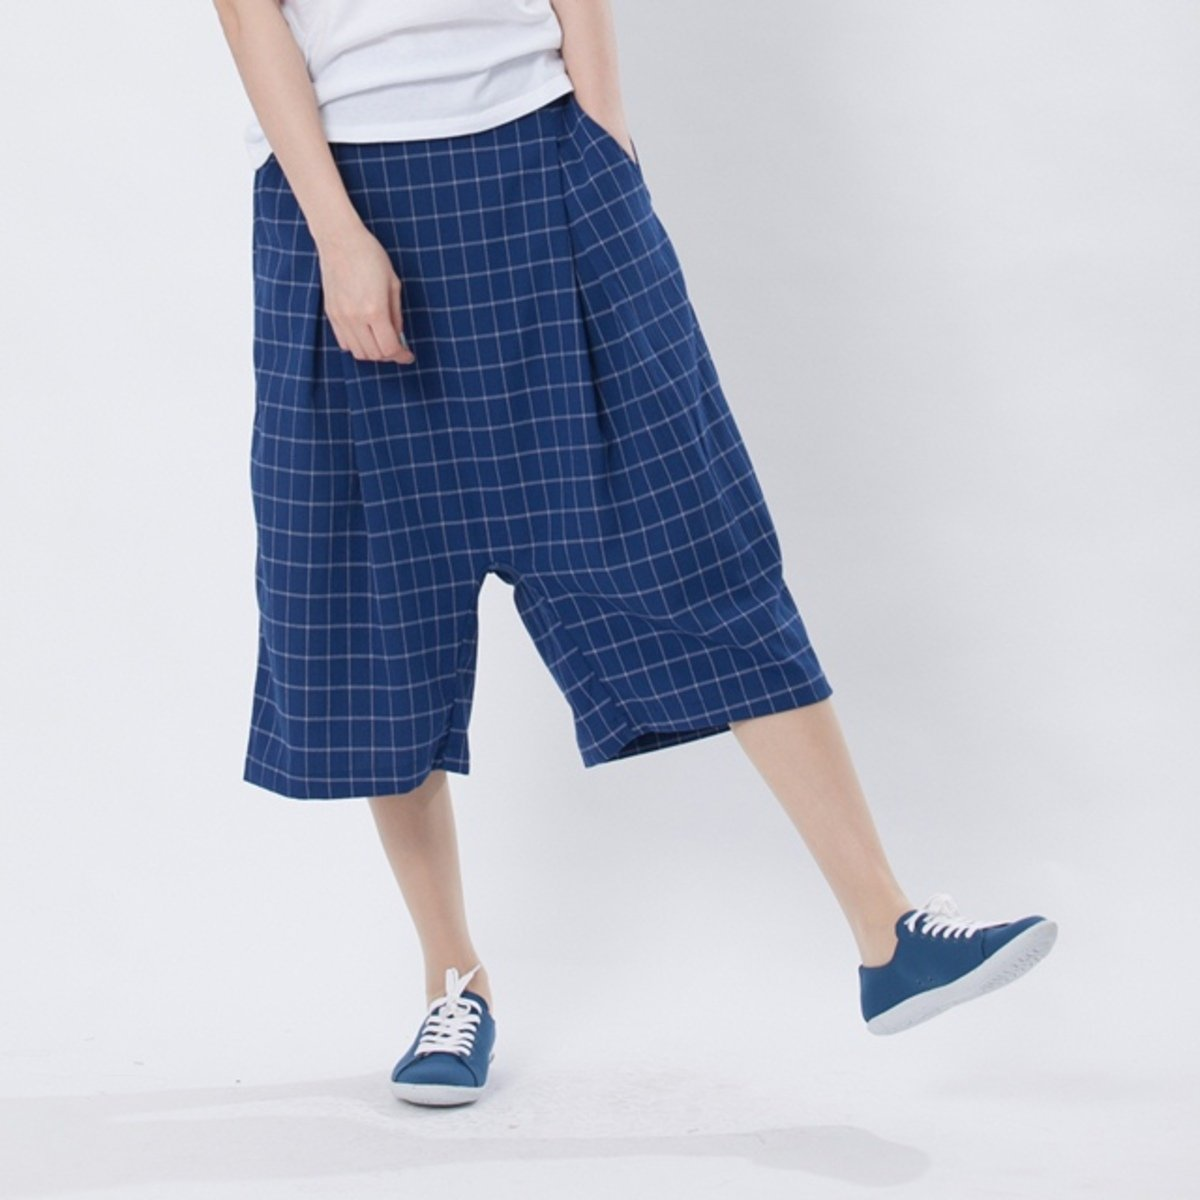 Gary wide pants / blue lattice